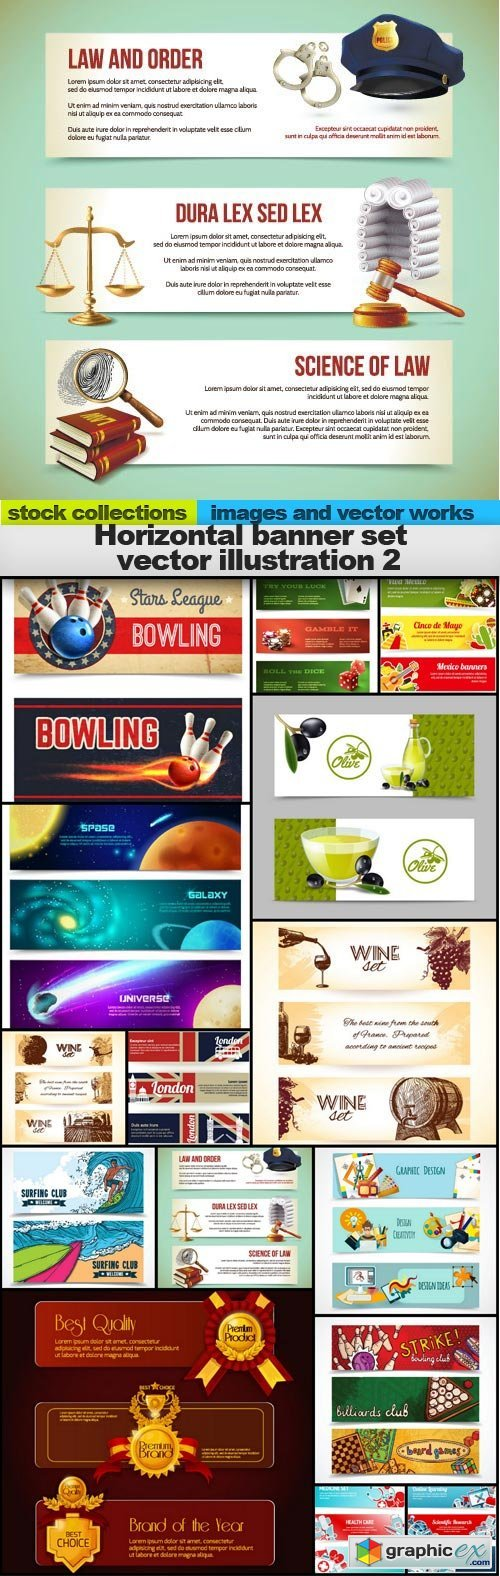 Horizontal banner set vector illustration 2, 15 x EPS